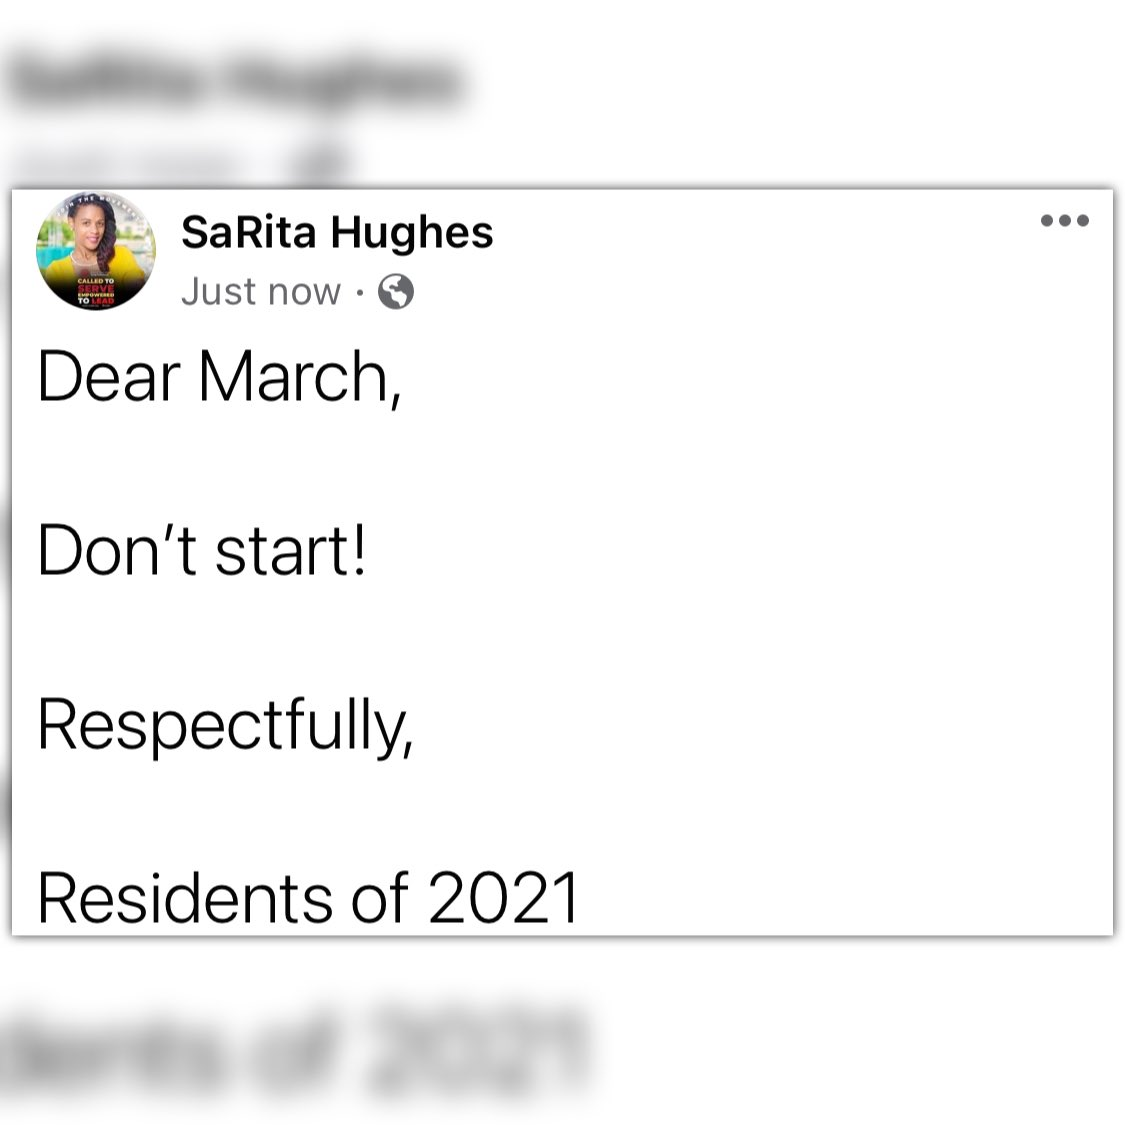 Now look here March, you brought a lot of mess with you last year, we're not doing this again! #letsbeclear #nottuhday #neveragain